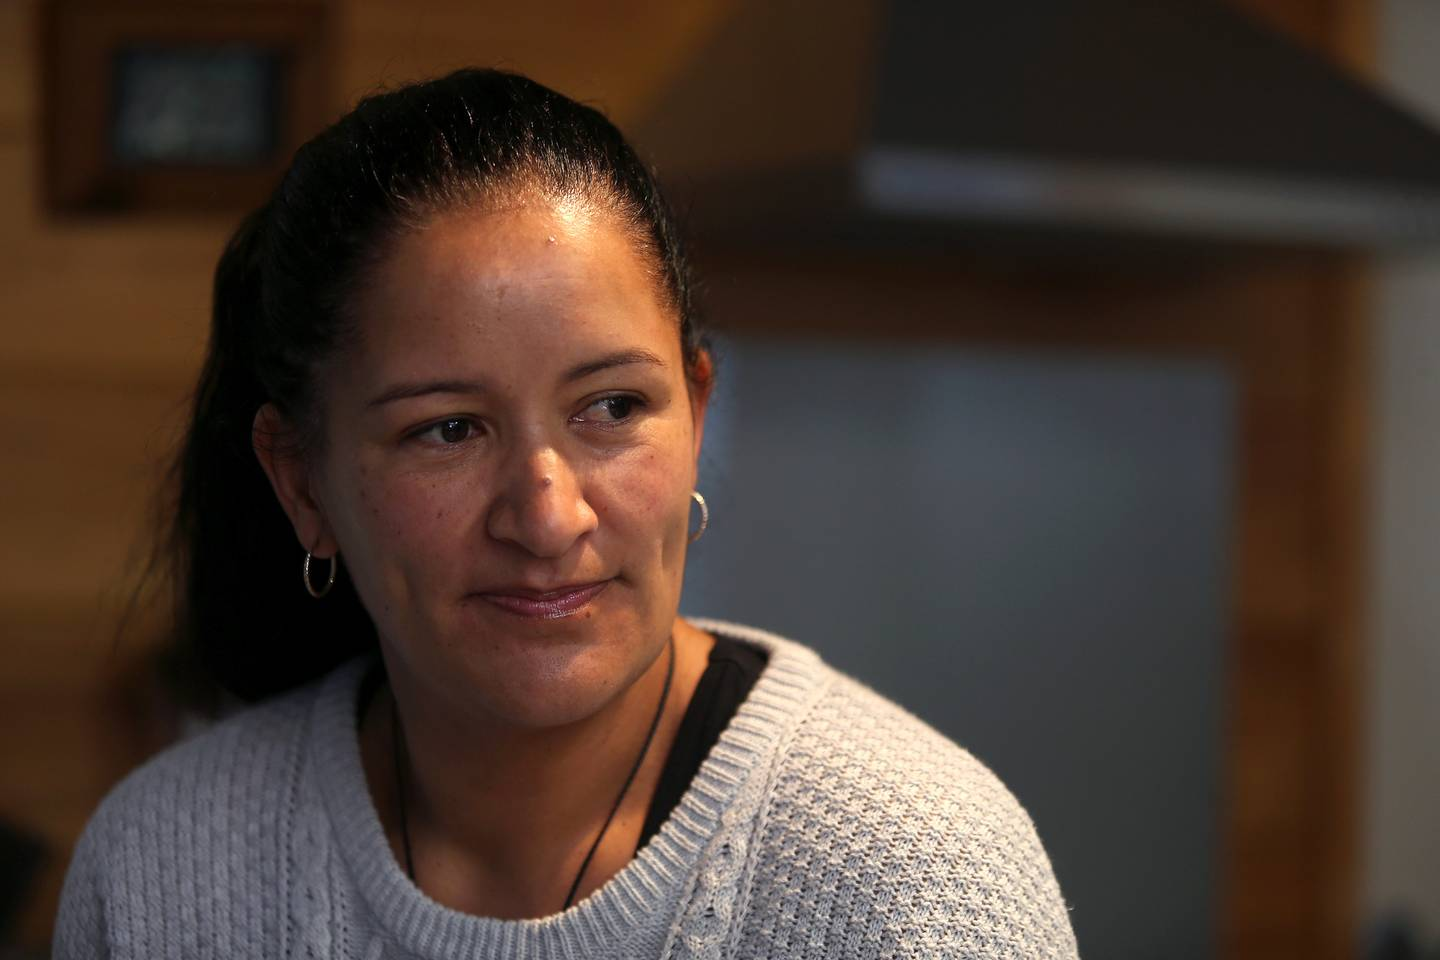 Narelle Newdick was the subject of racist comments on a voicemail message. Photo: NZ Herald